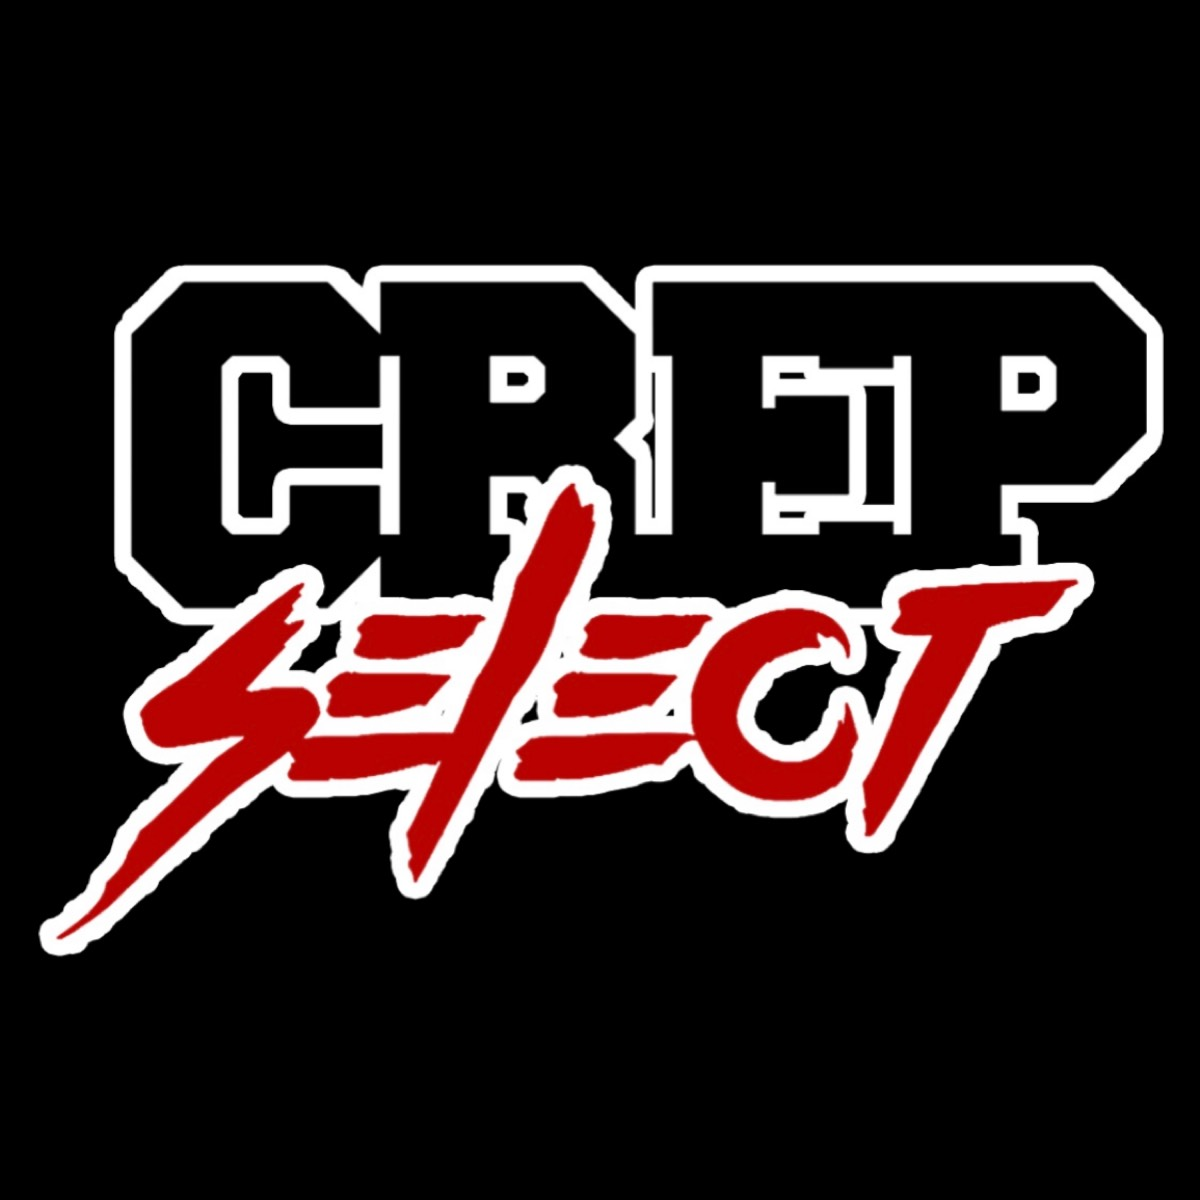 Bump profile picture for @crepselect